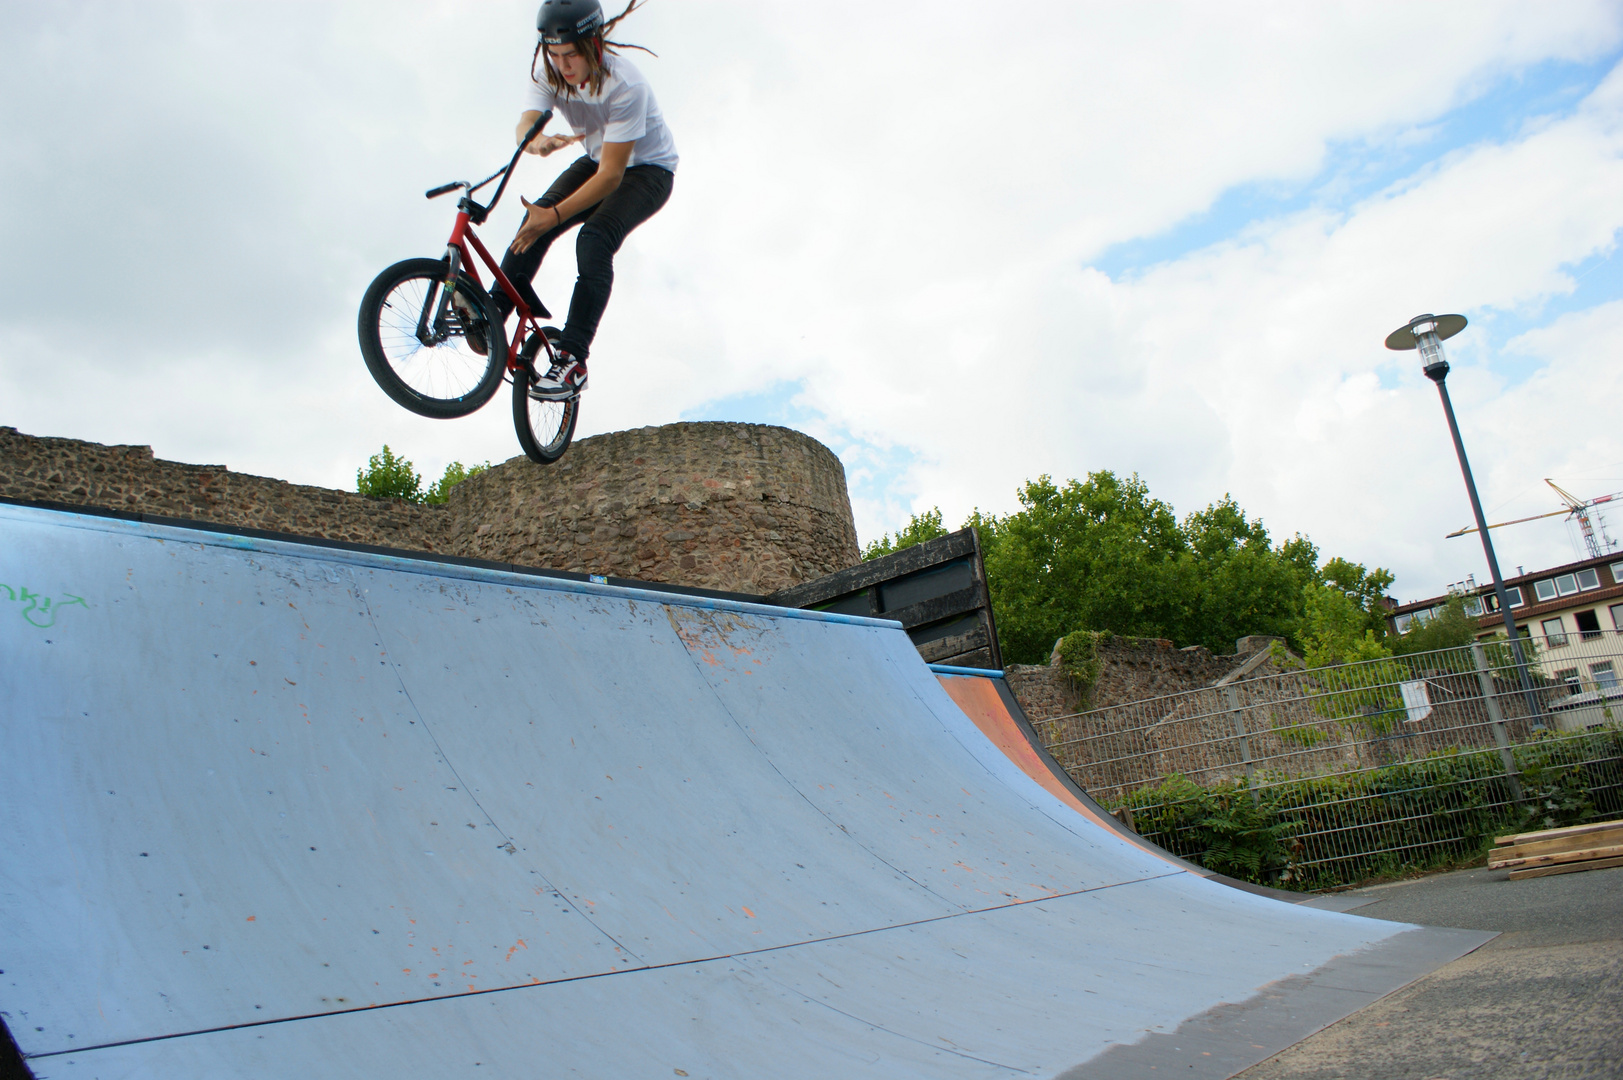 Barspin to Disaster